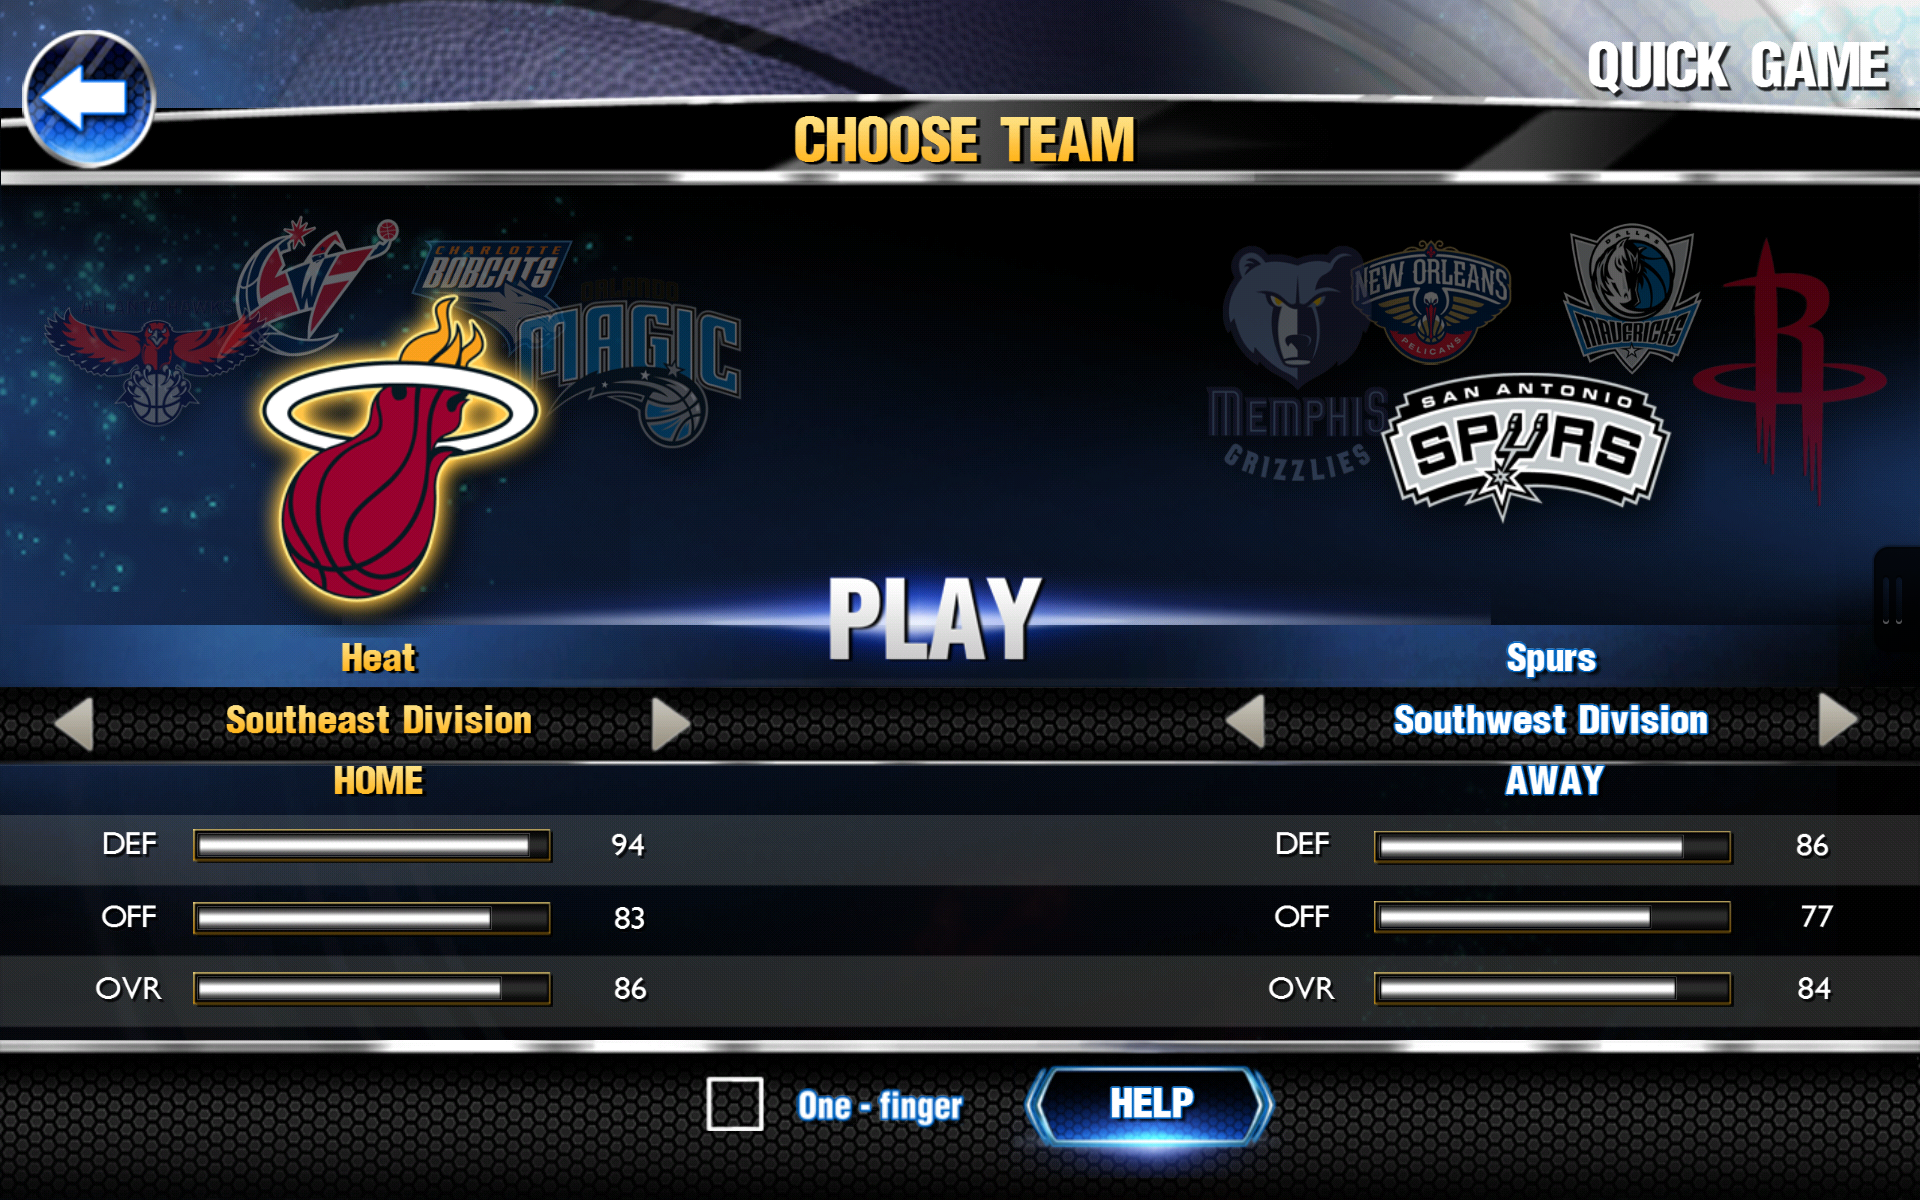 Nba 2k14 for android version 1. 0 & 1. 14[amazon] | free.